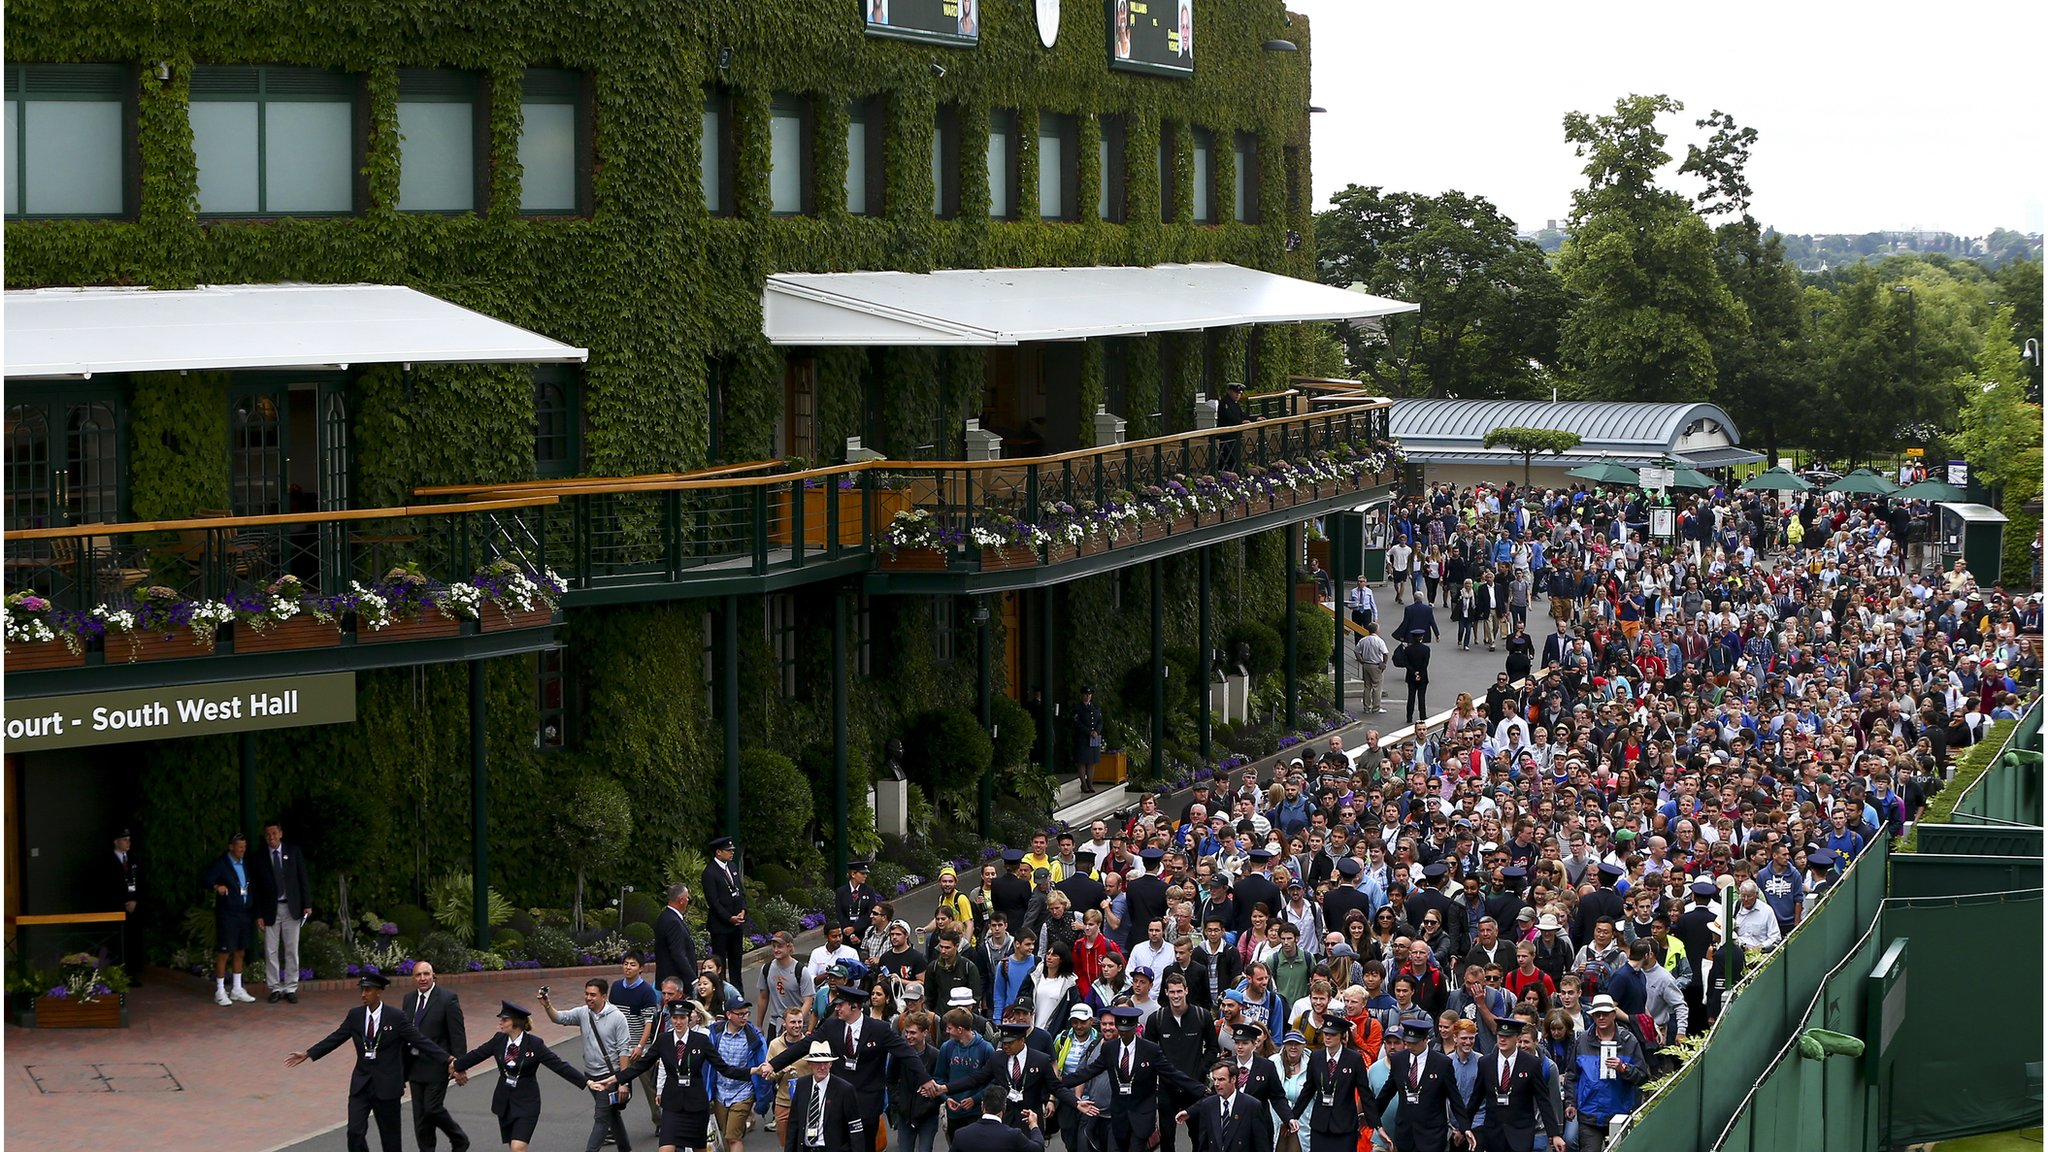 Wimbledon expansion plans set to advance after golf club votes to sell